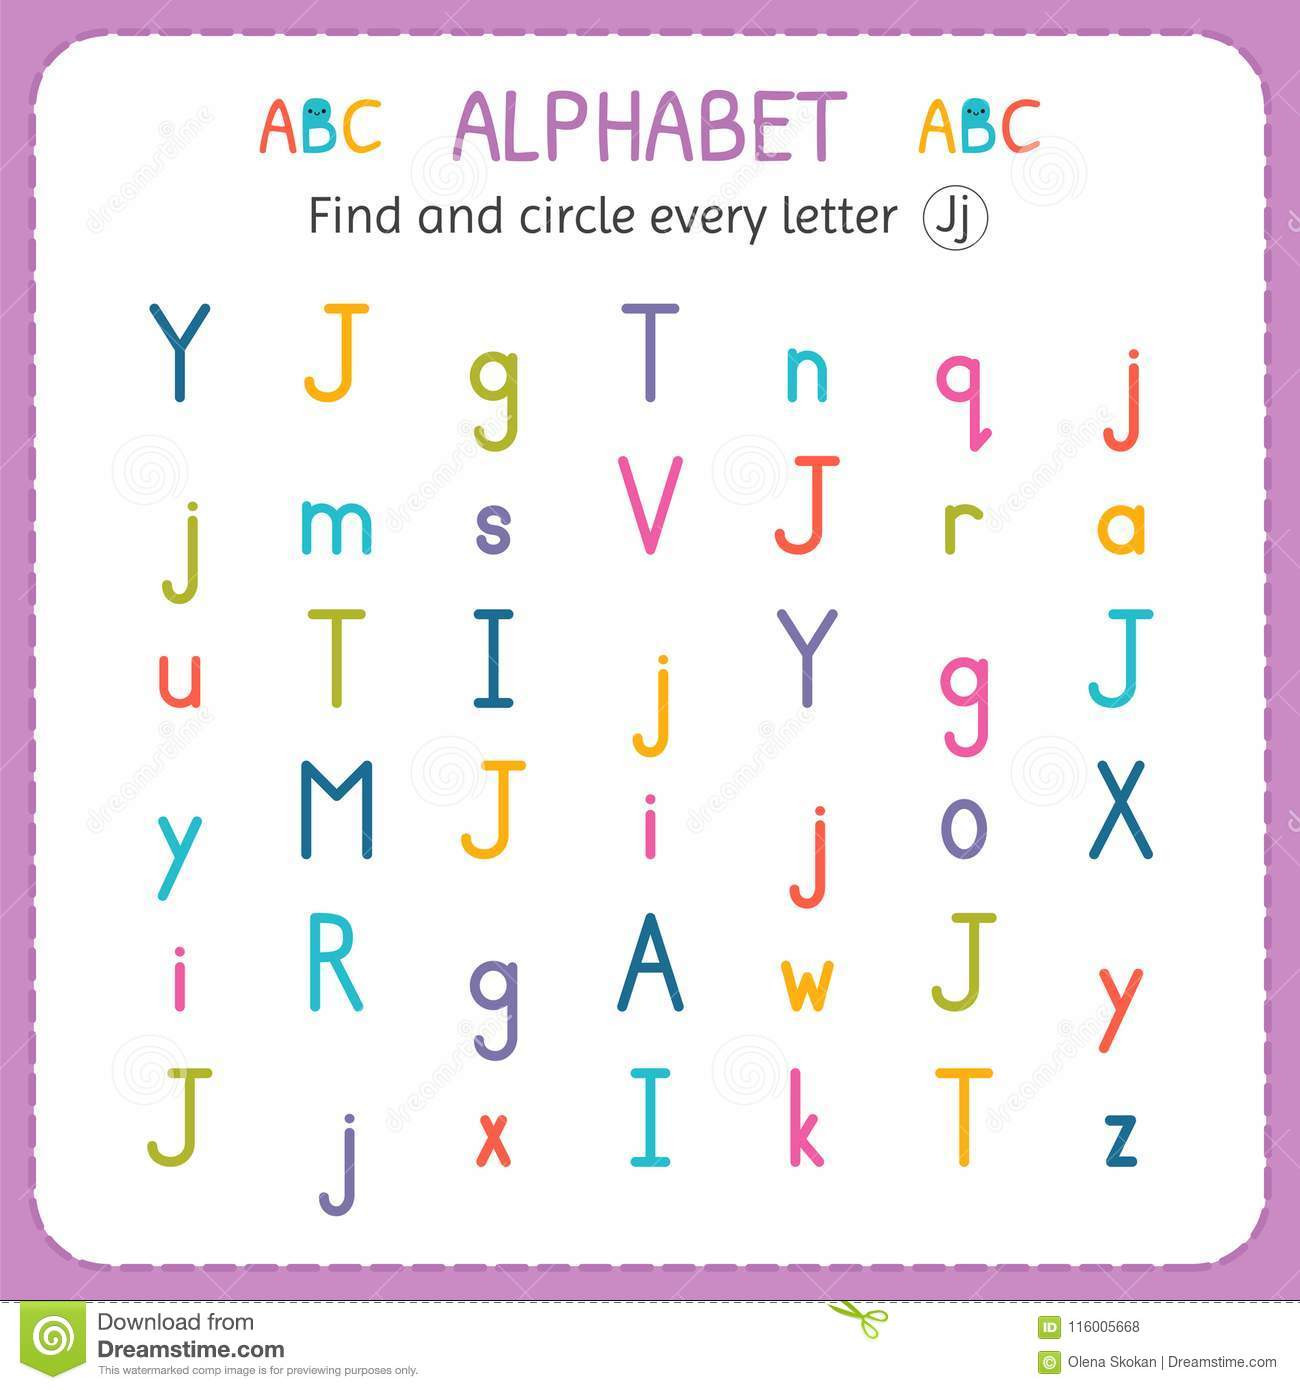 Letter J Worksheets for Preschool Find and Circle Every Letter J Worksheet for Kindergarten